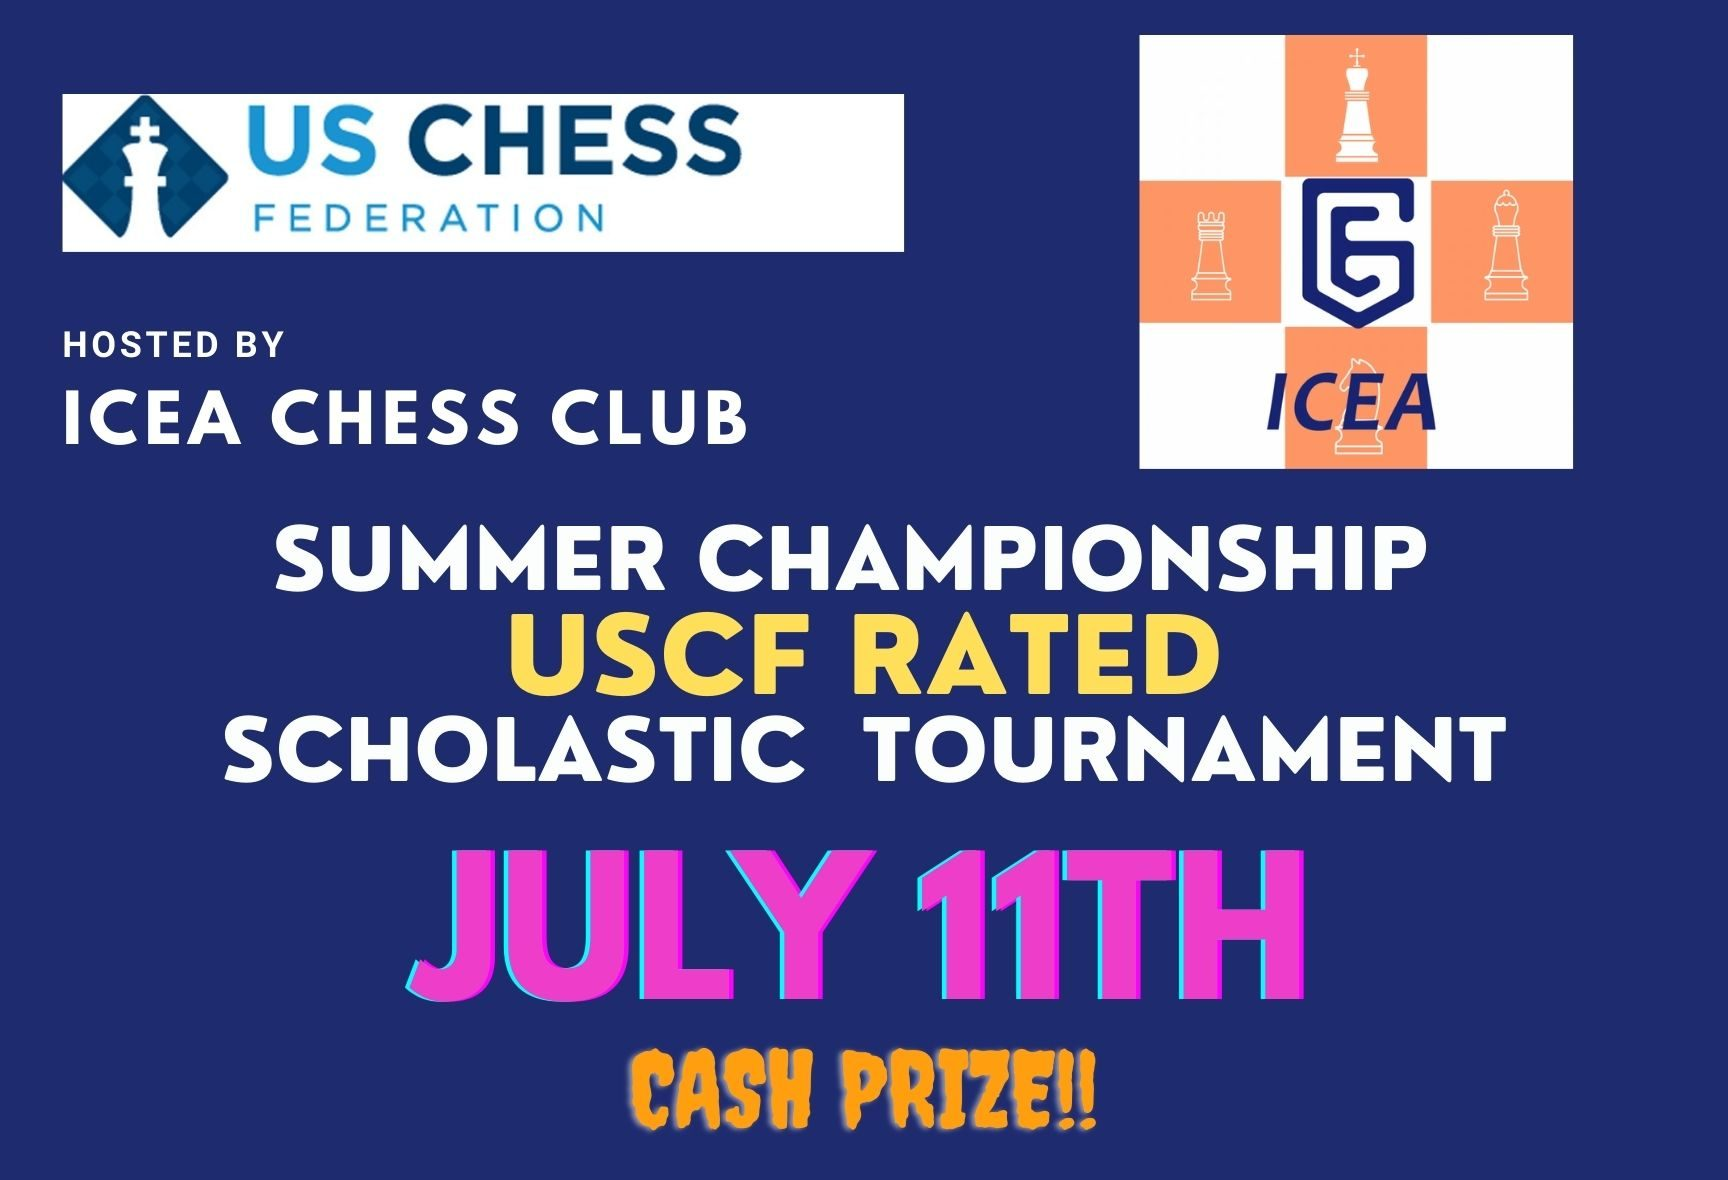 ICEA SUMMER SCHOLASTIC CHAMPIONSHIP USCF-RATED K-12